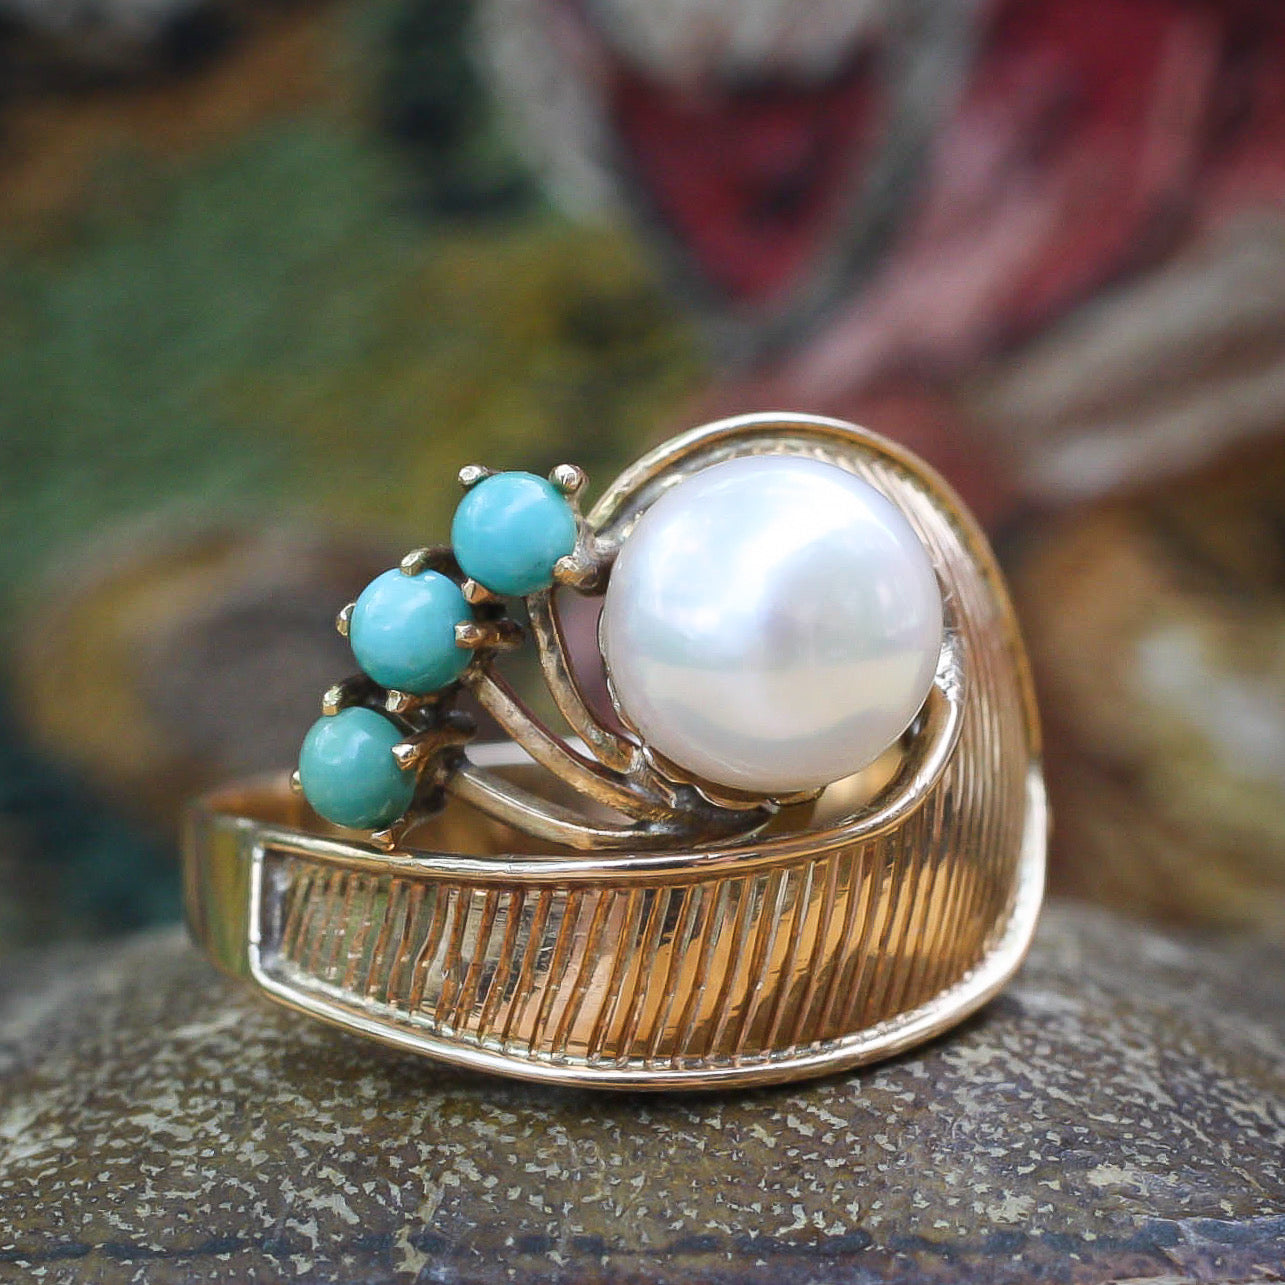 Retro Pearl and Turquoise Ring c1940